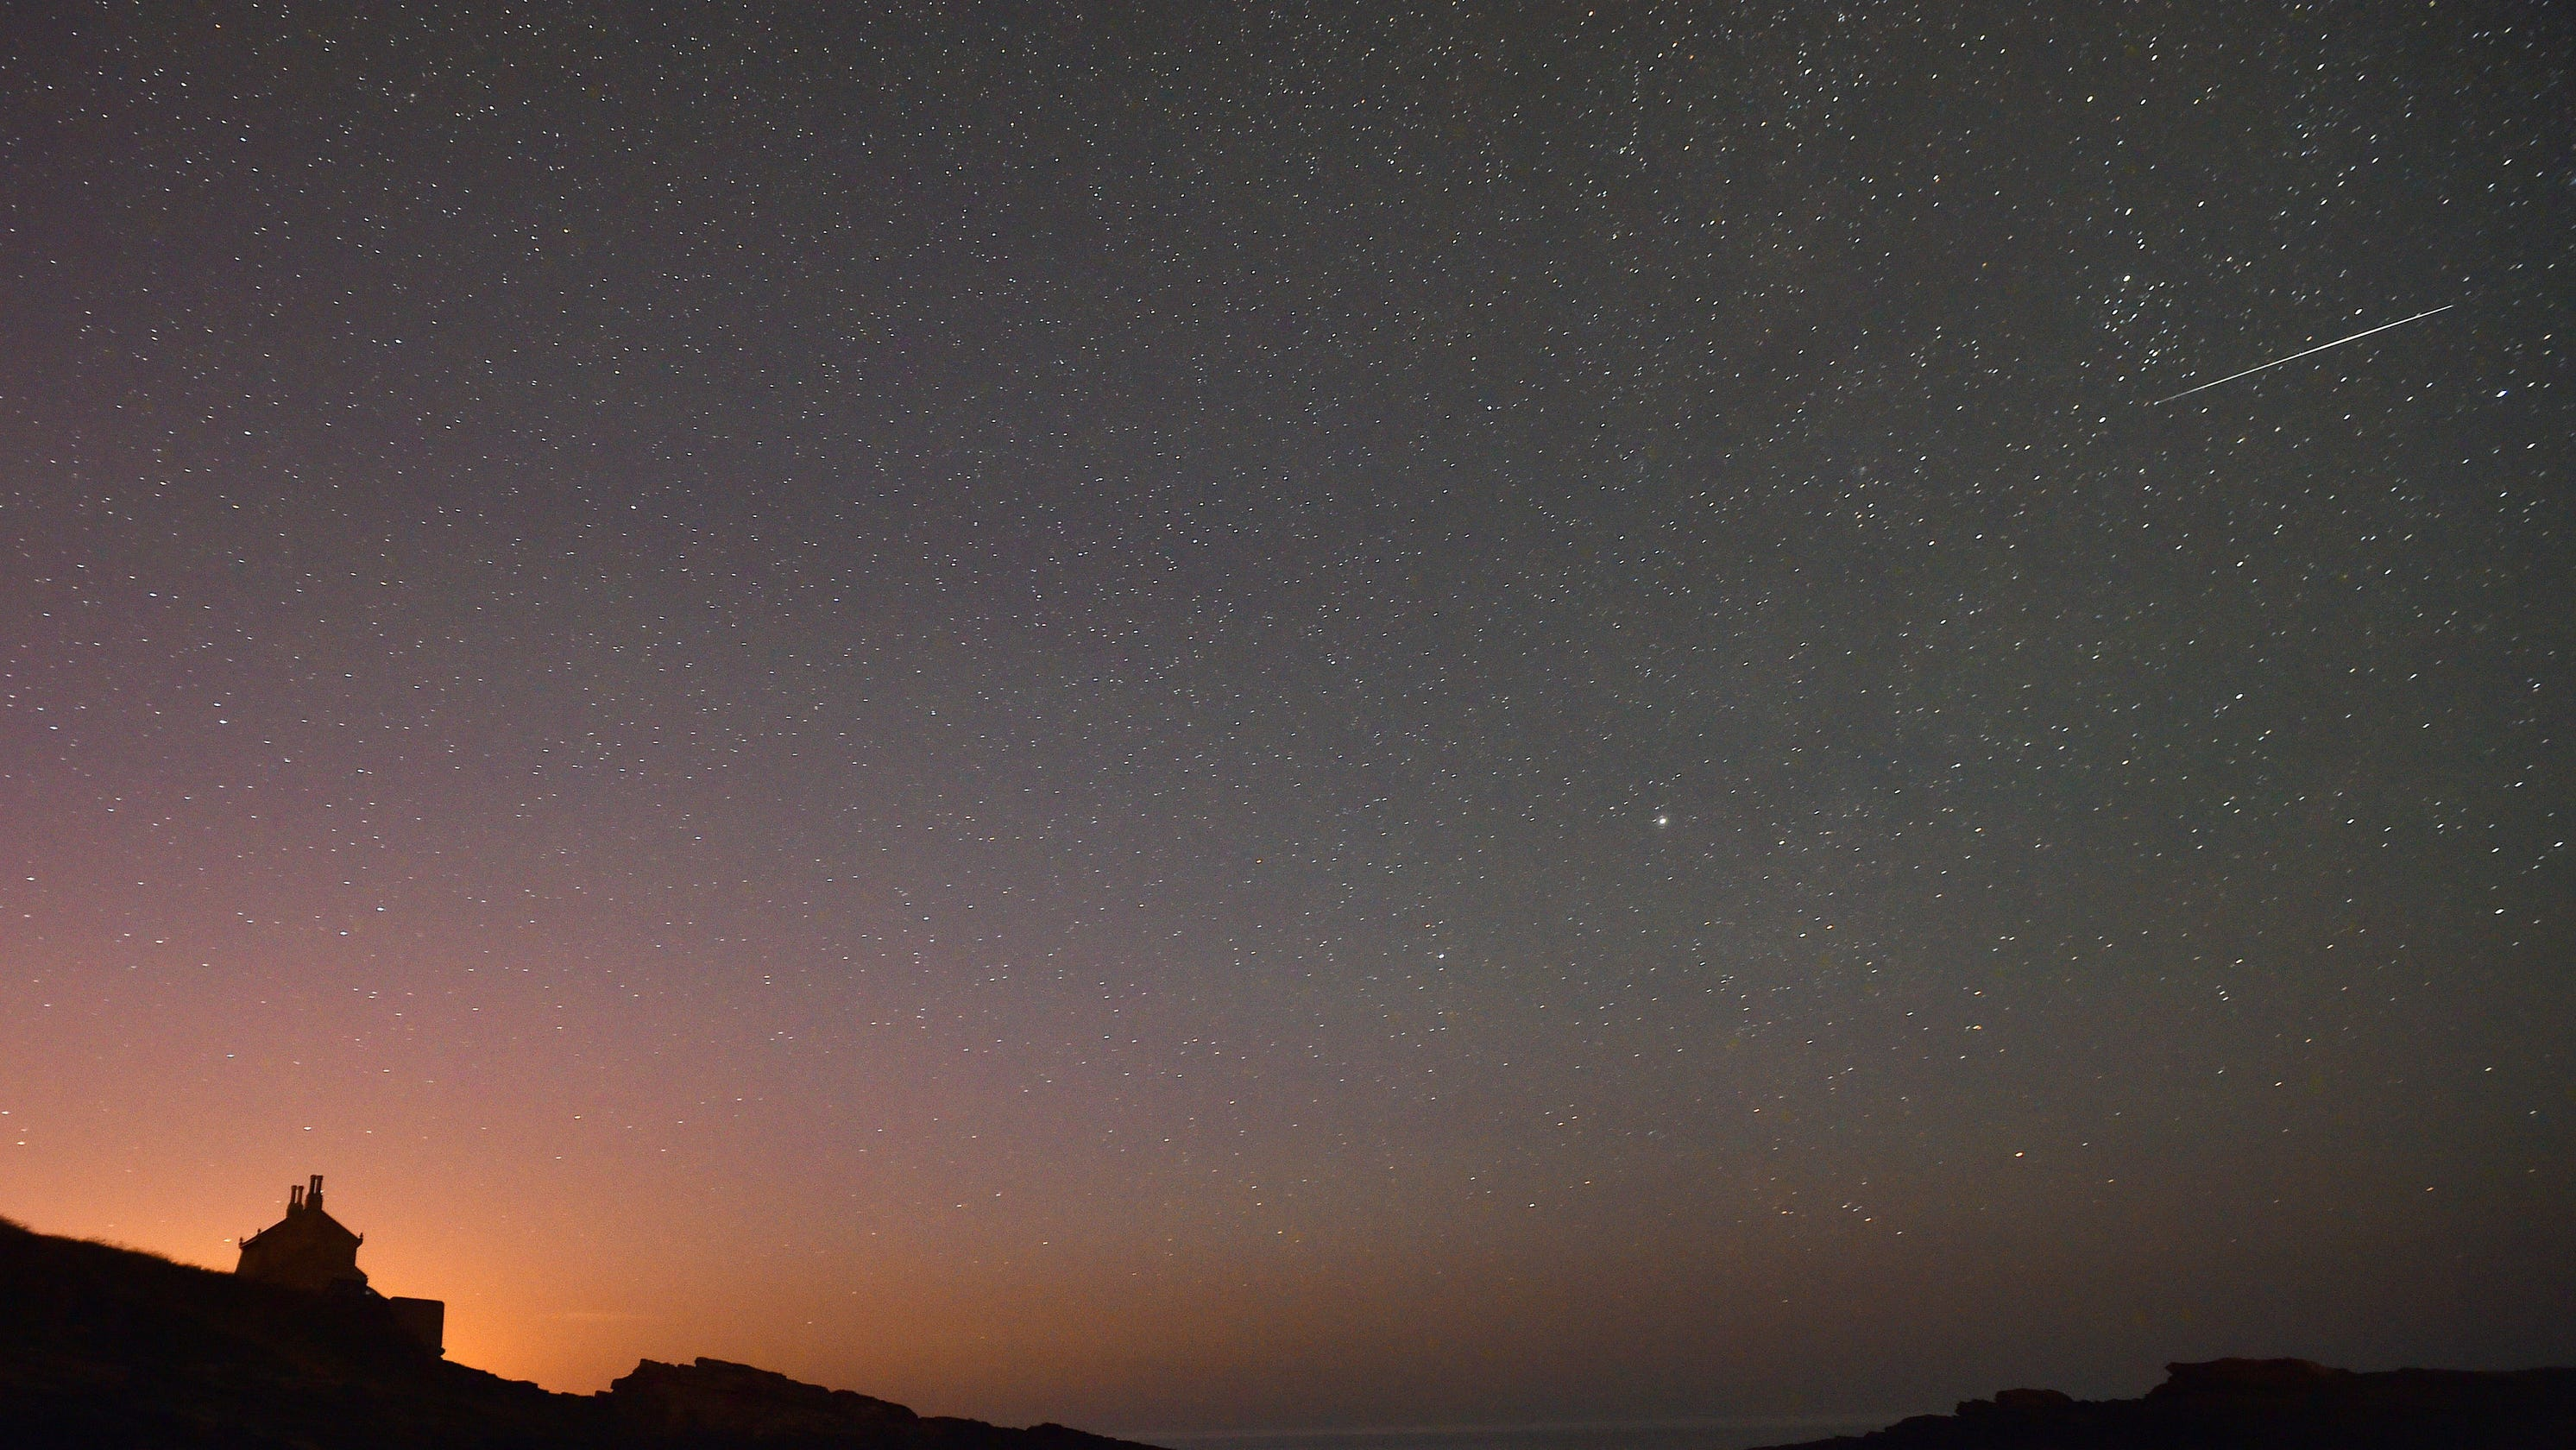 The Orionid meteor shower peaks Tuesday night into Wednesday morning